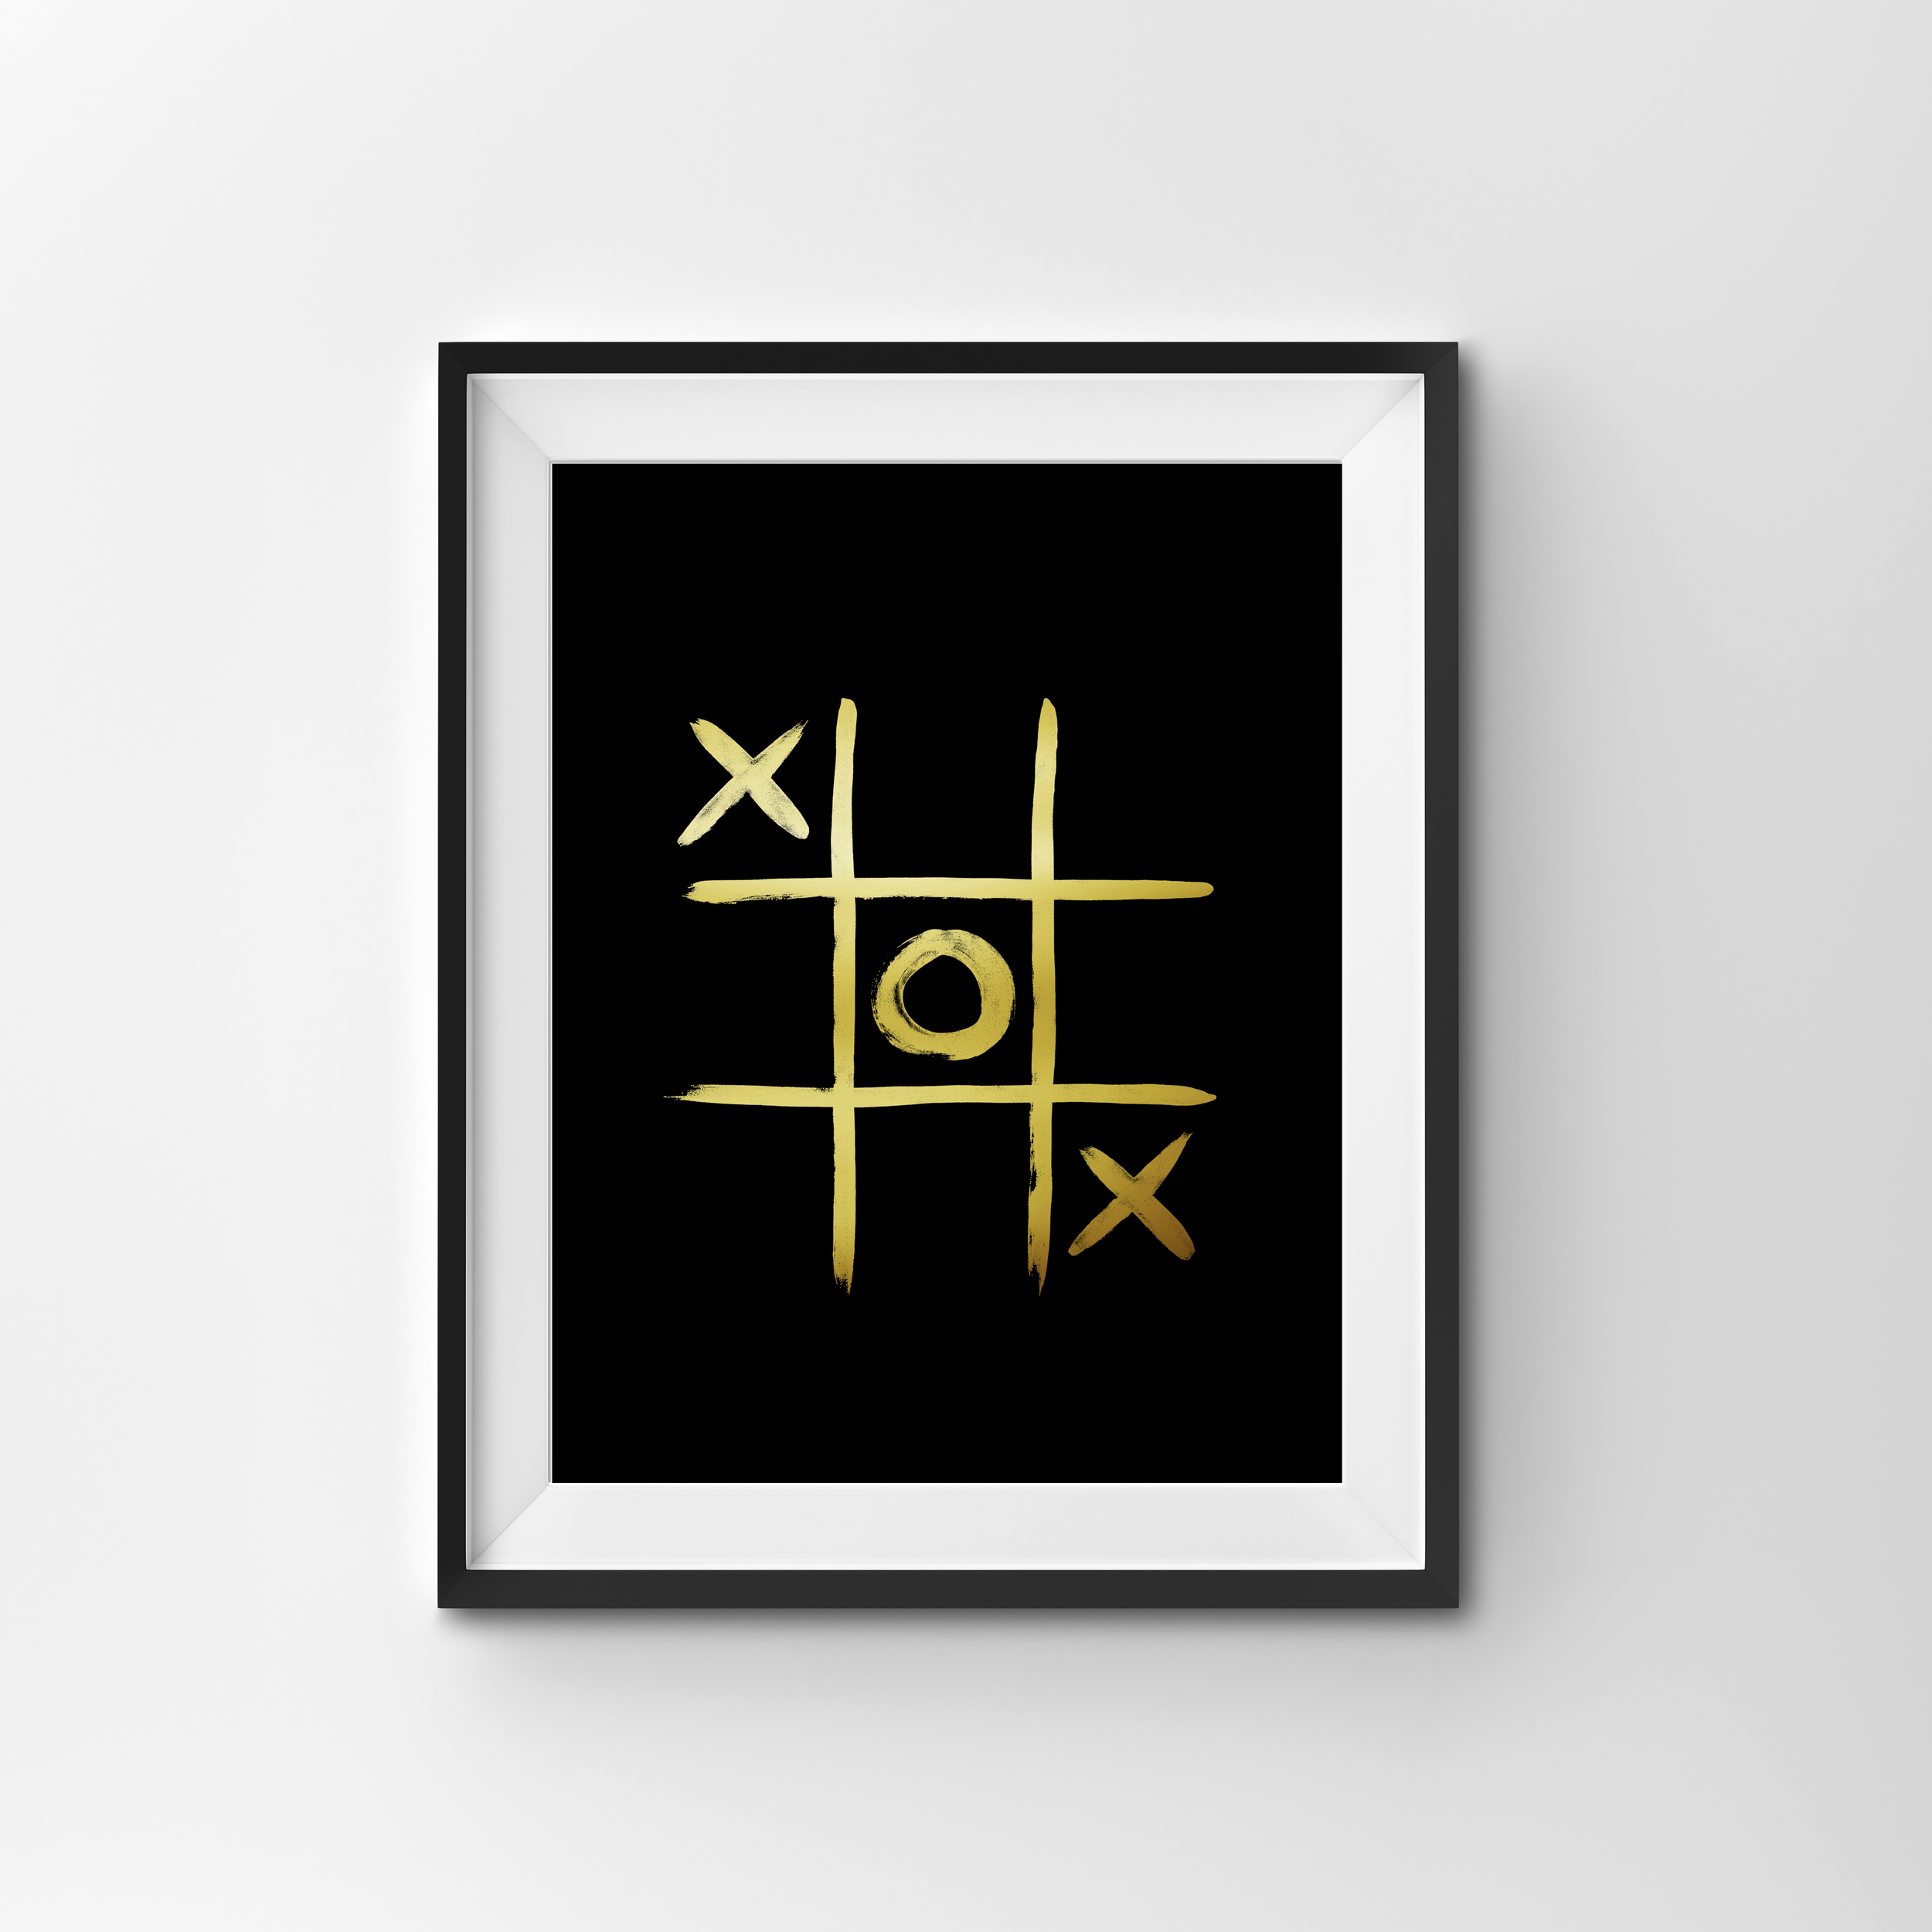 NOUGHTS & CROSSES   BLACK PRINT WITH GOLD FOIL PRINTED ON 300gsm TEXTURED CARD STOCK   A4 $25.00   A3 $35.00